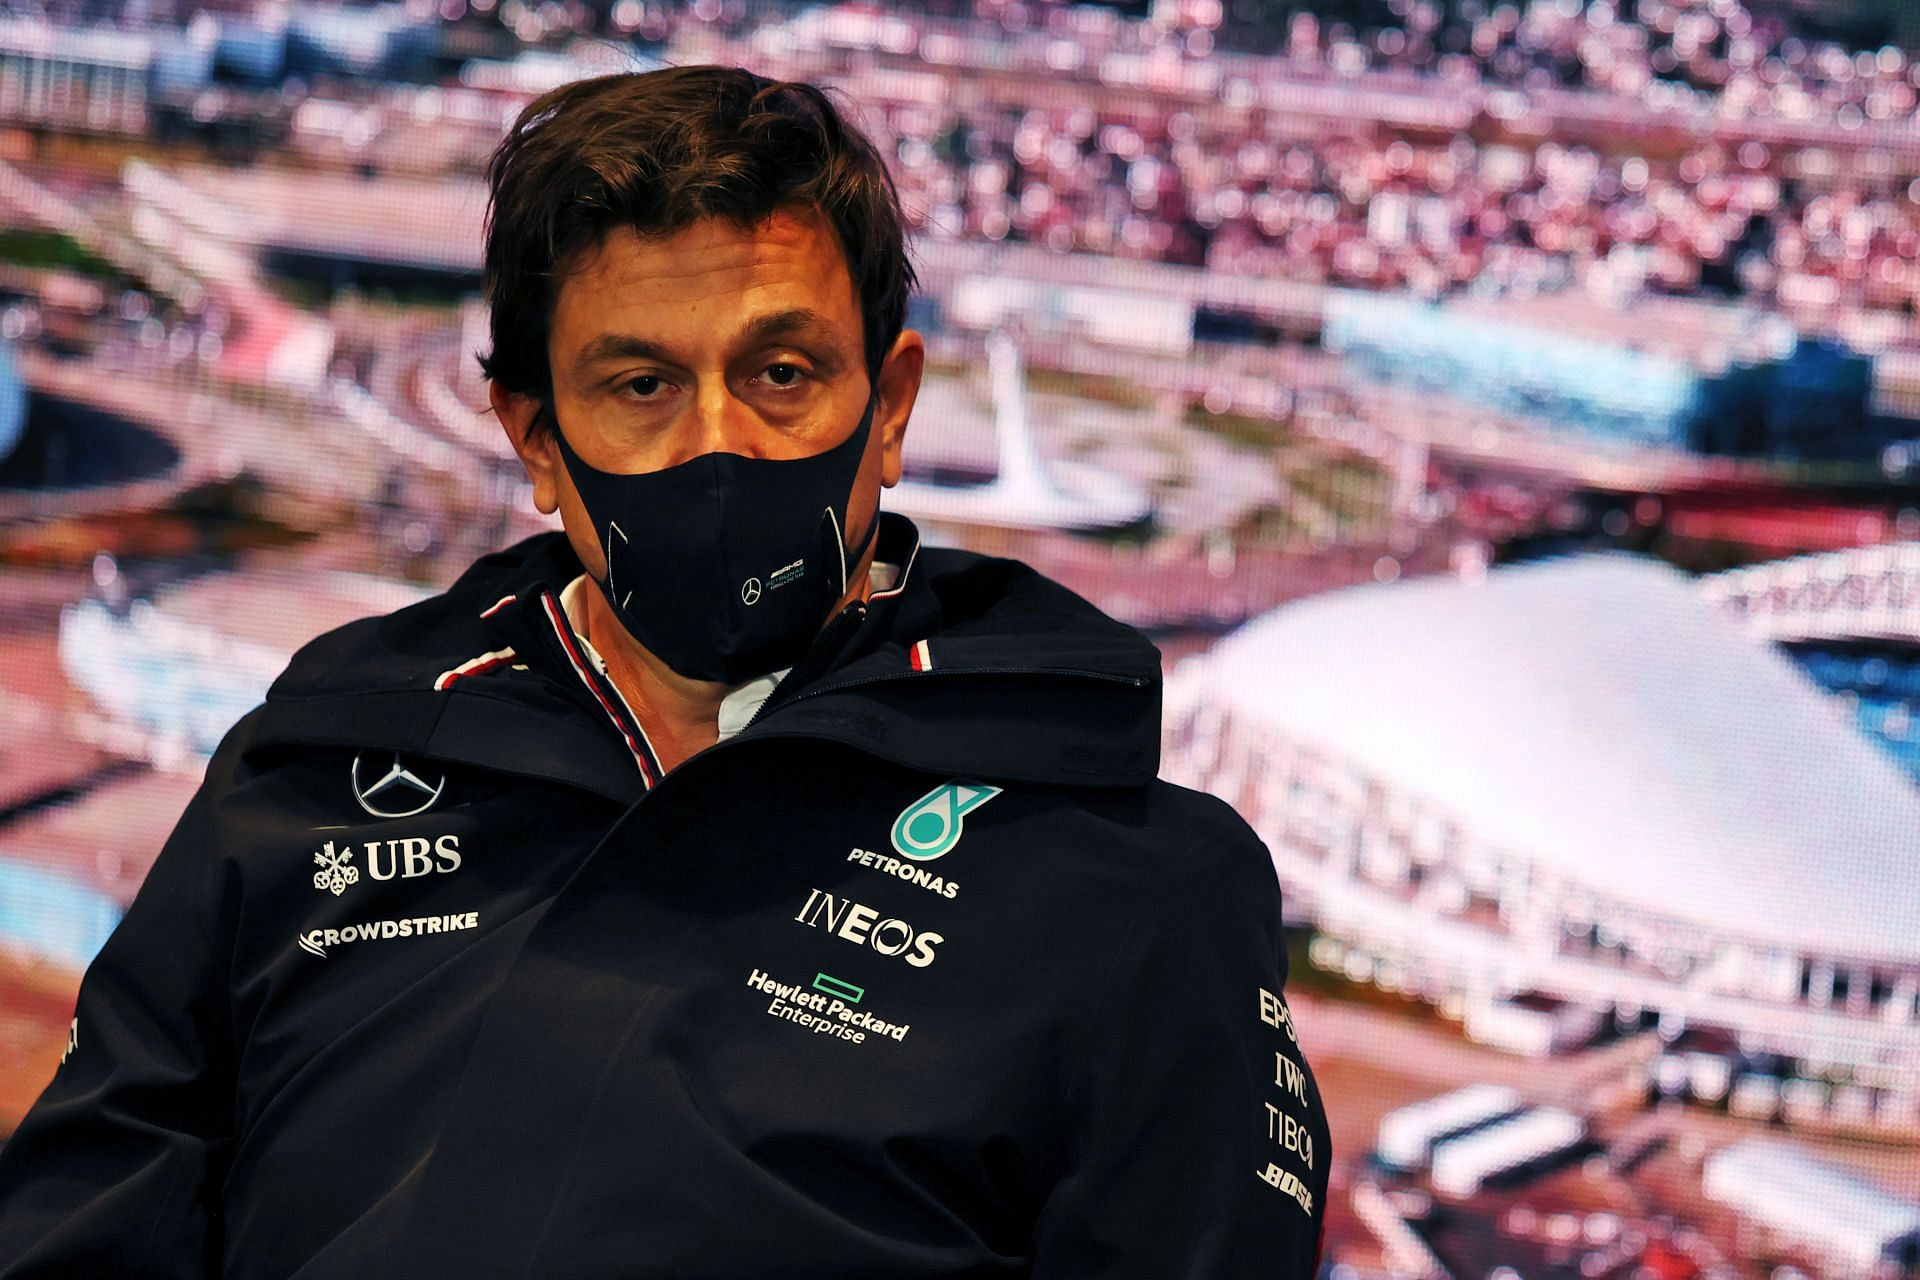 Mercedes GP Executive Director Toto Wolff talks in the Team Principals Press Conference during practice ahead of the 2021 Russian GP at Sochi Autodrome. (Photo by XPB - Pool/Getty Images)